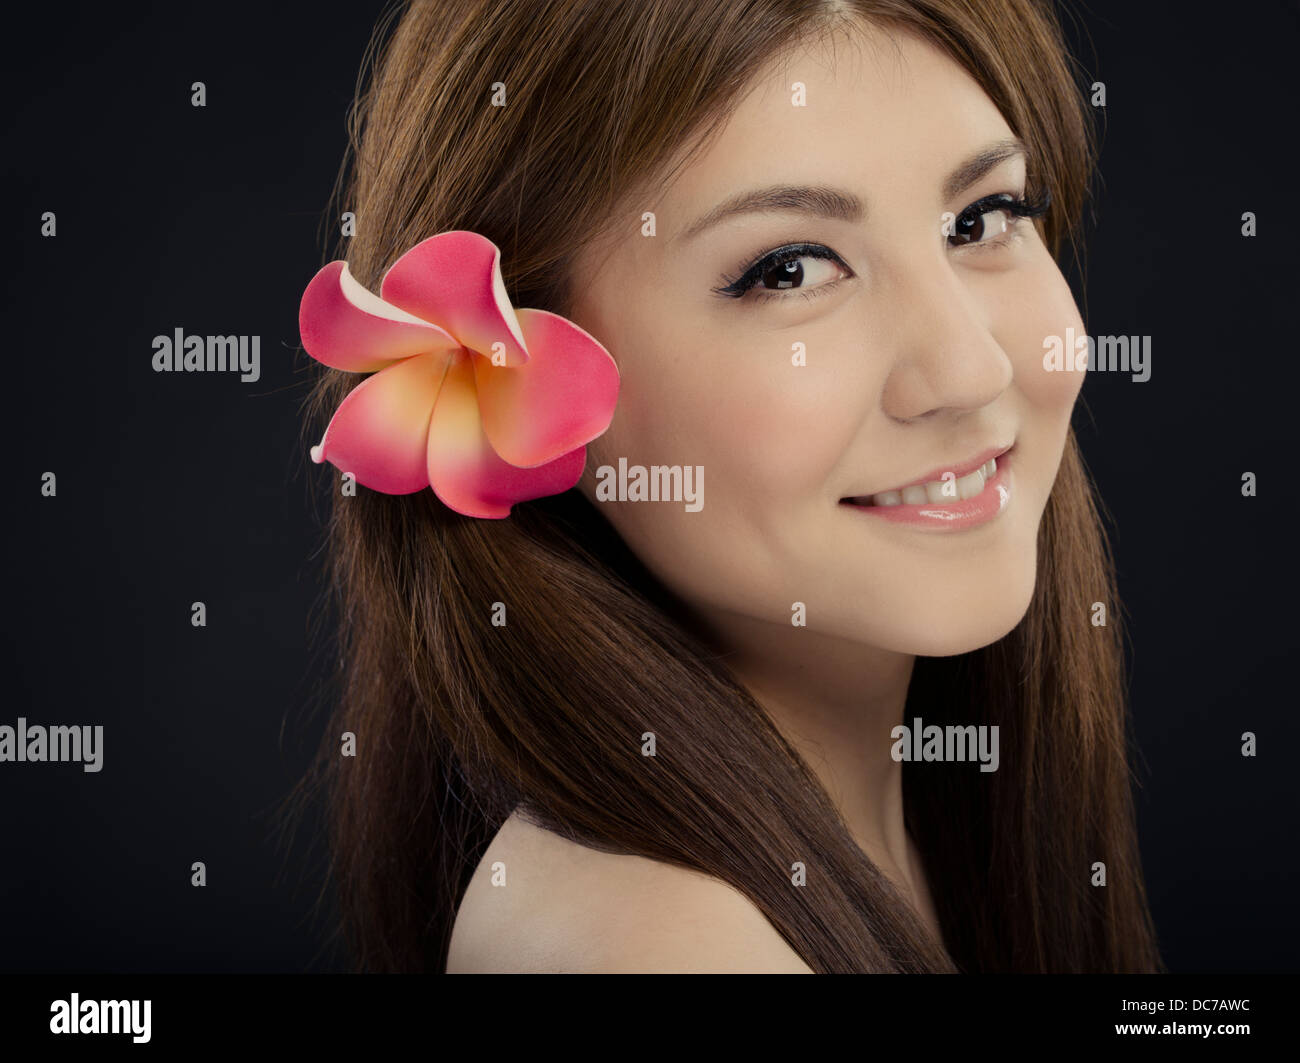 Plumeria stock photos plumeria stock images alamy beautiful young woman in her twenties smiling with plumeria flower in her hair over the right izmirmasajfo